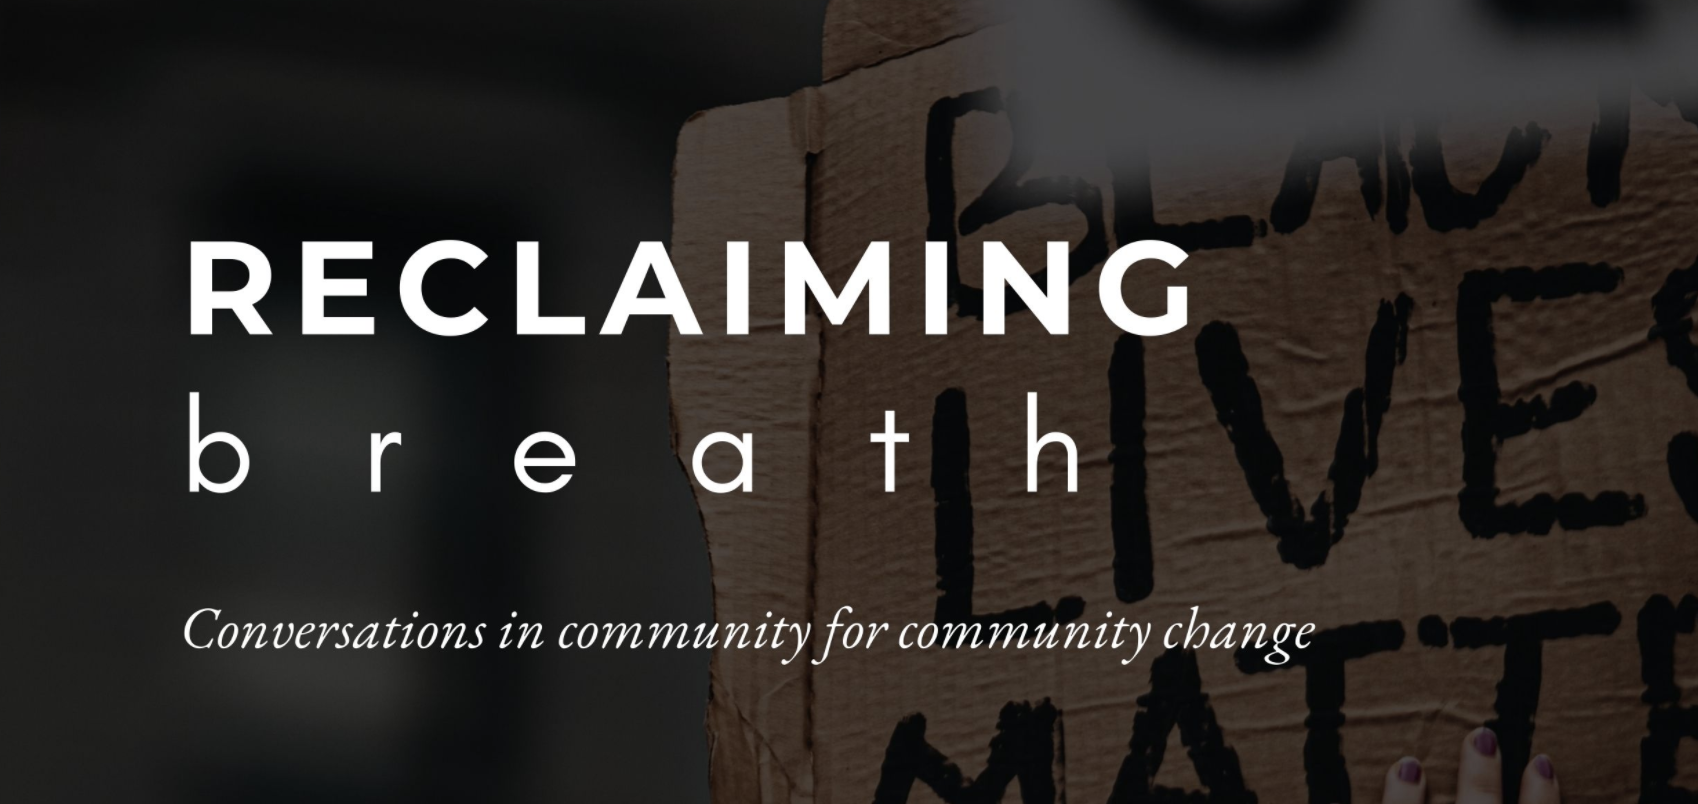 Reclaiming Breath: Conversations in Community for Community Change